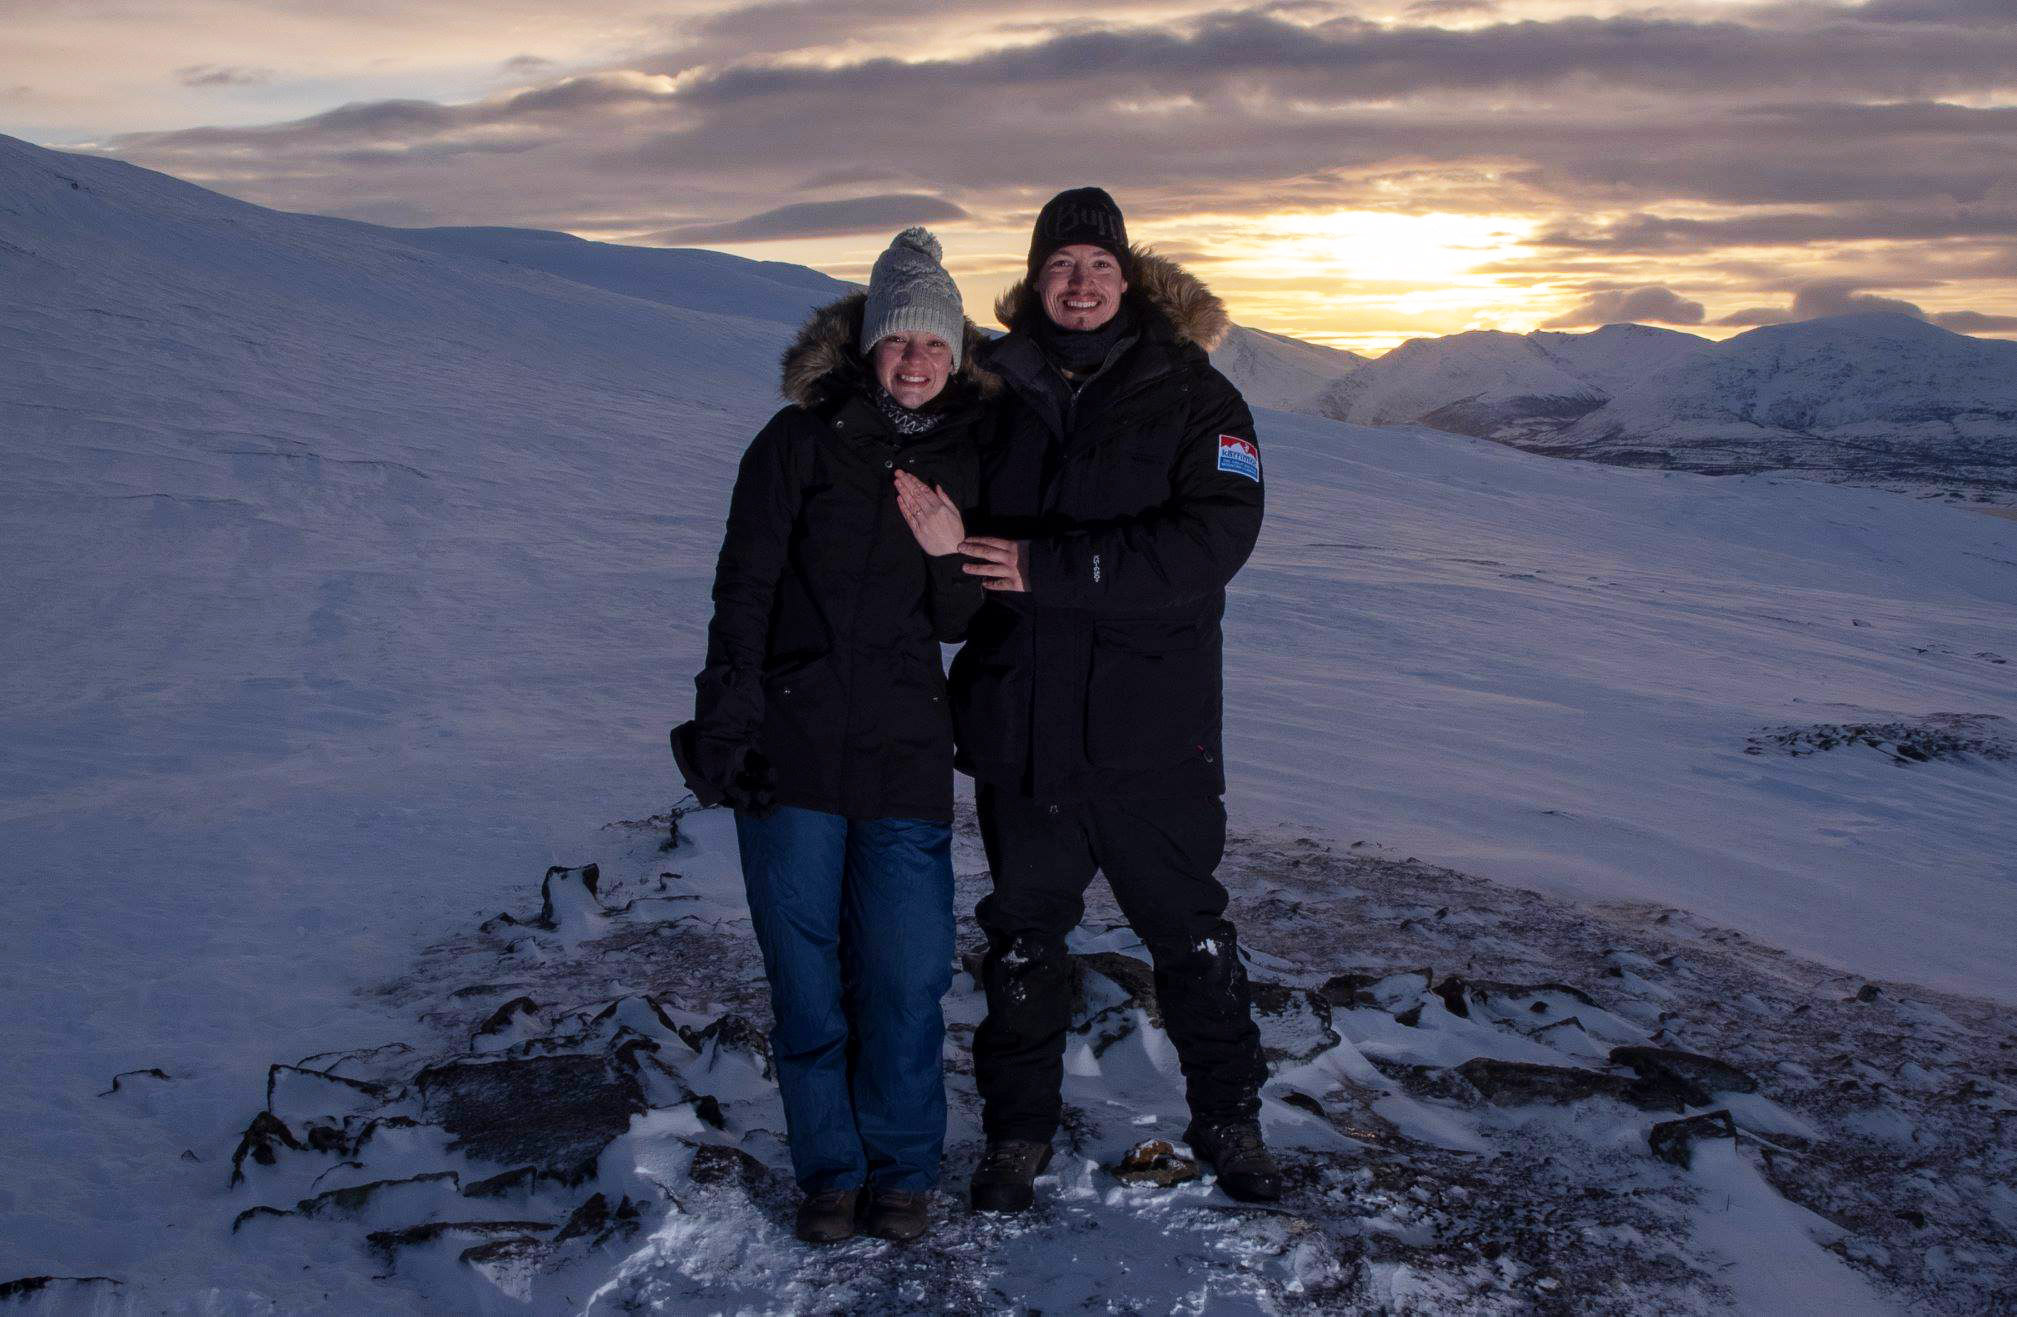 Surprise proposal at sunset in the snow and mountains